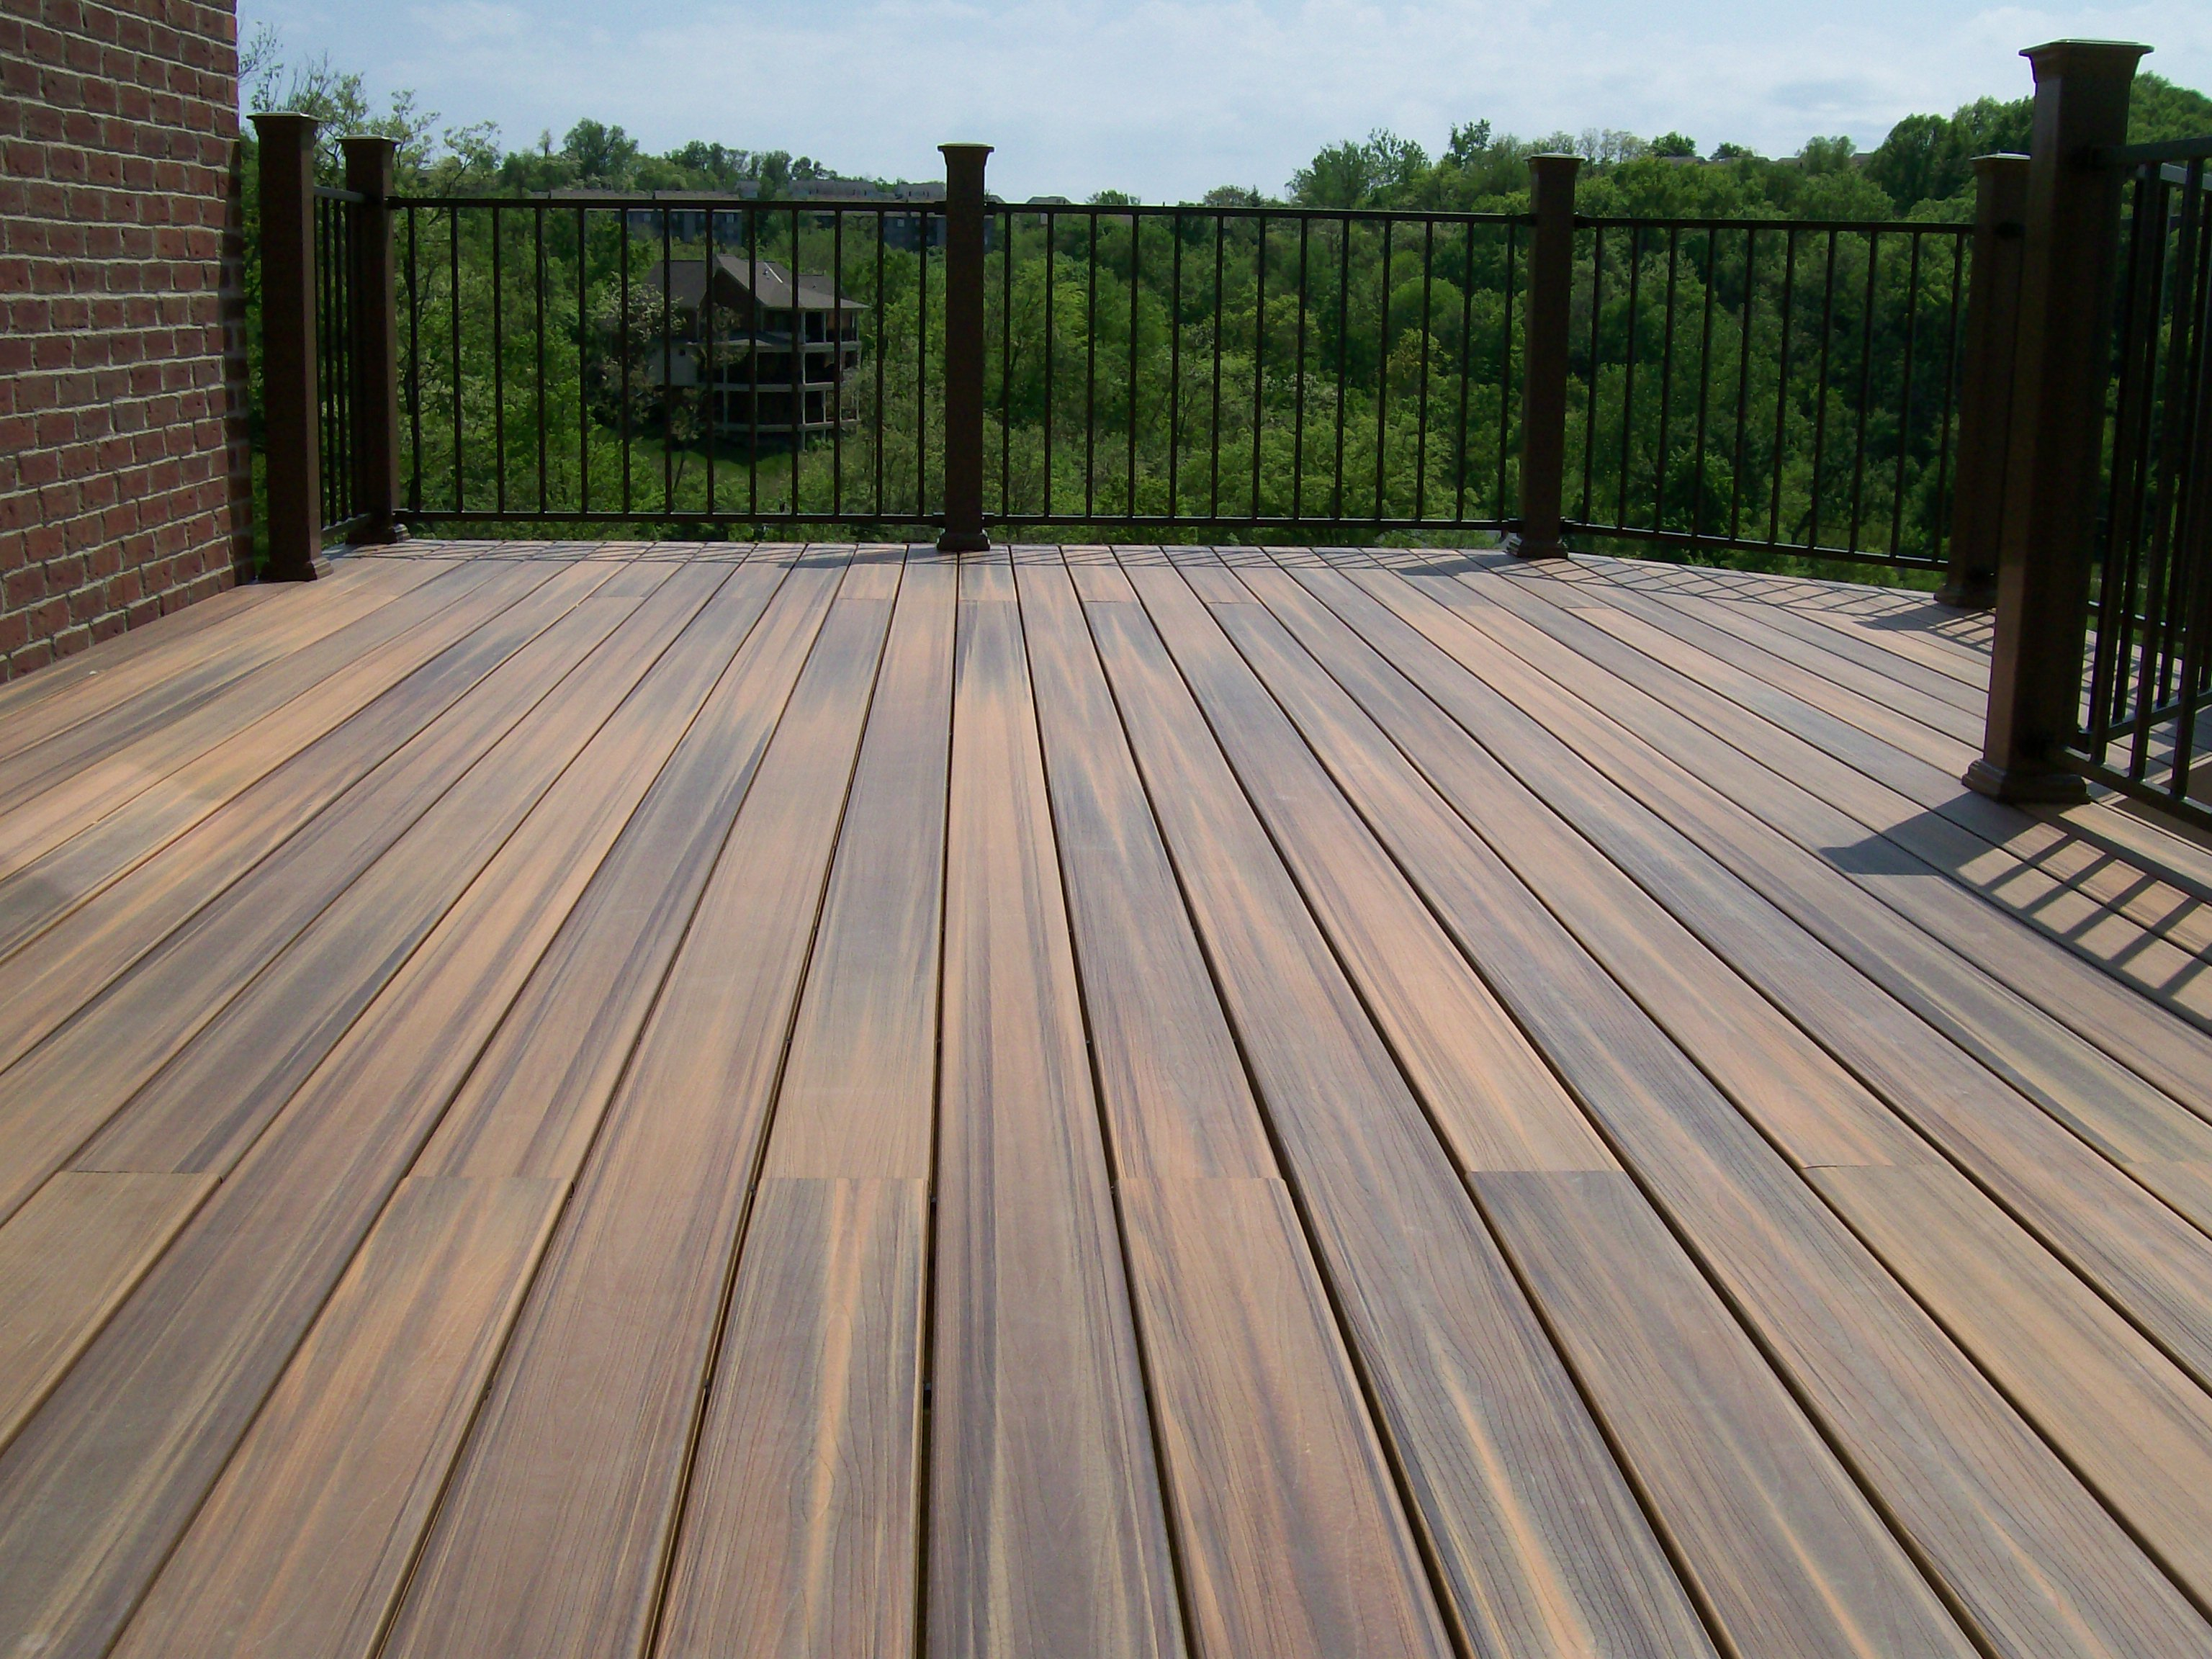 Decks Design Inc Usa Composite Decking for measurements 3072 X 2304